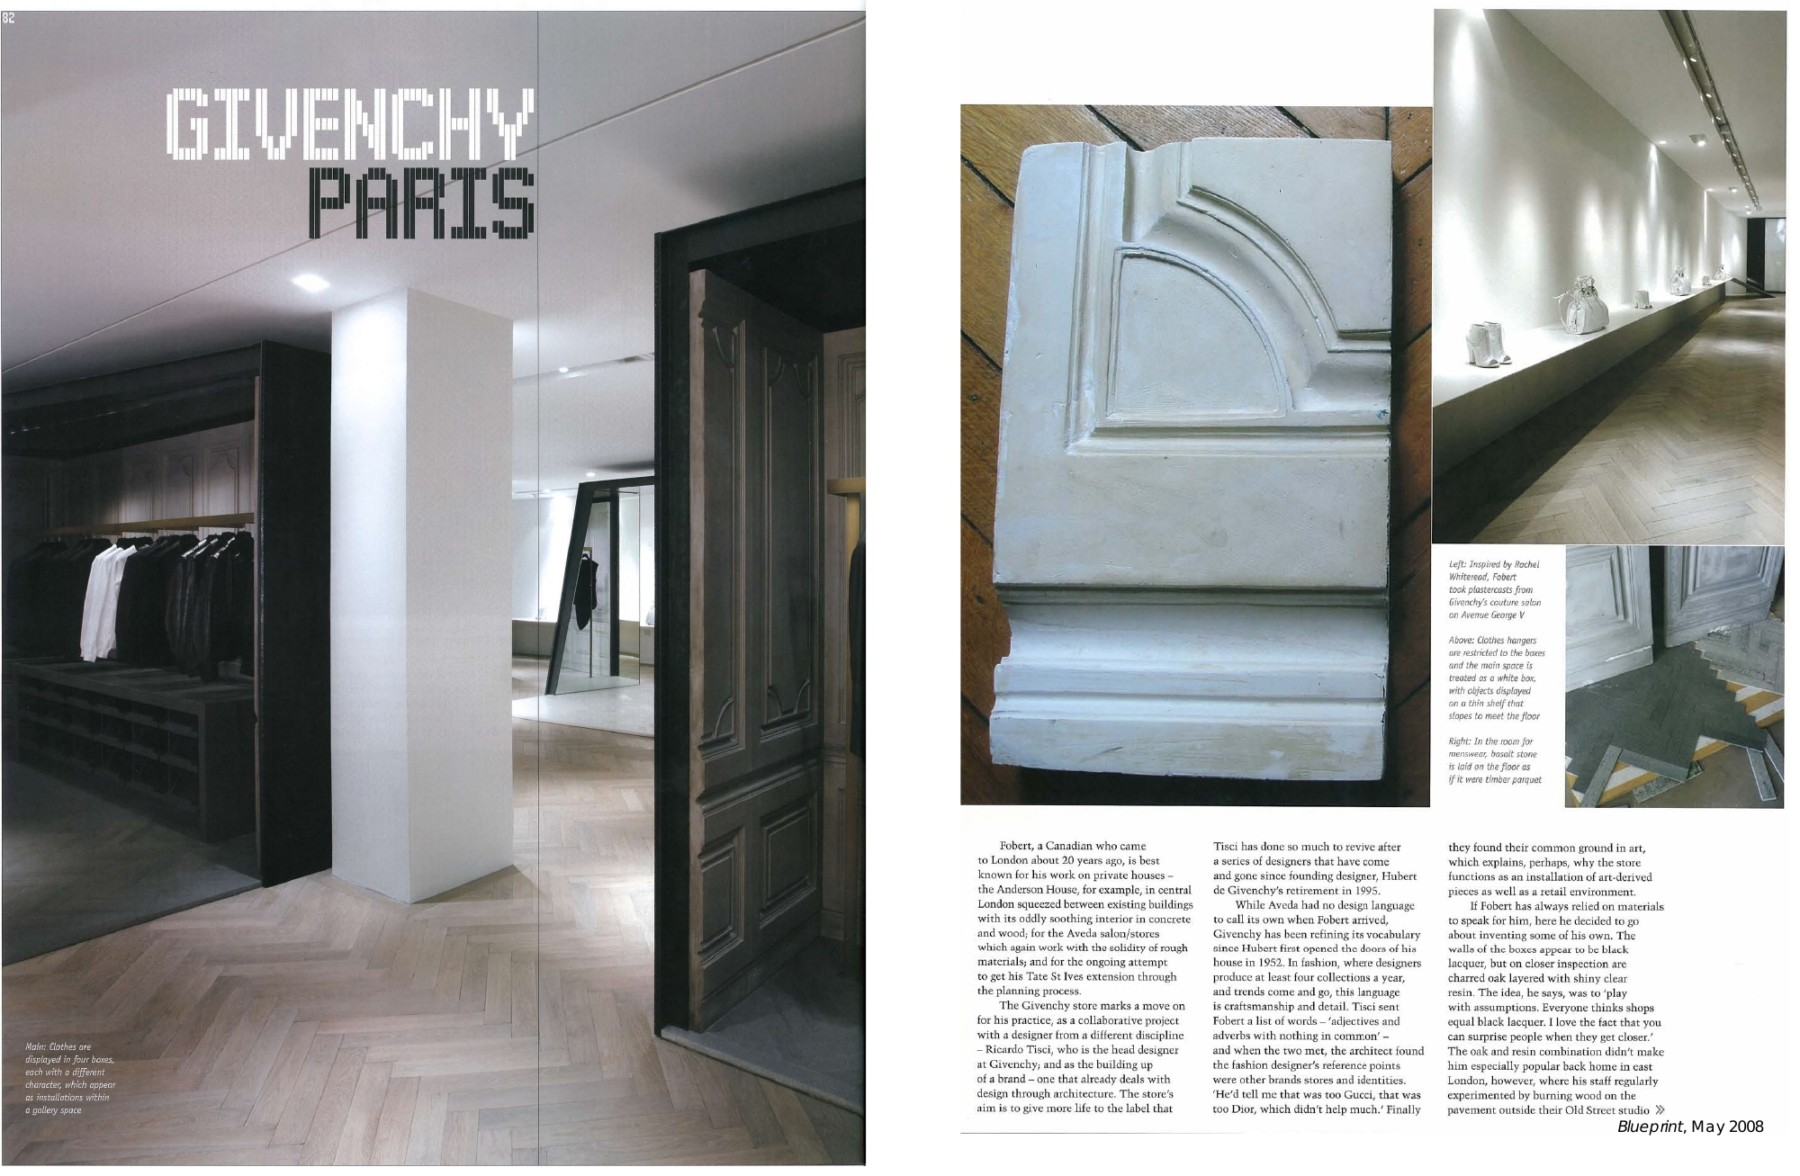 Givenchy-Paris-boutique-designer-fashion-retail-Jamie-Fobert-Architects-article-press-blueprint